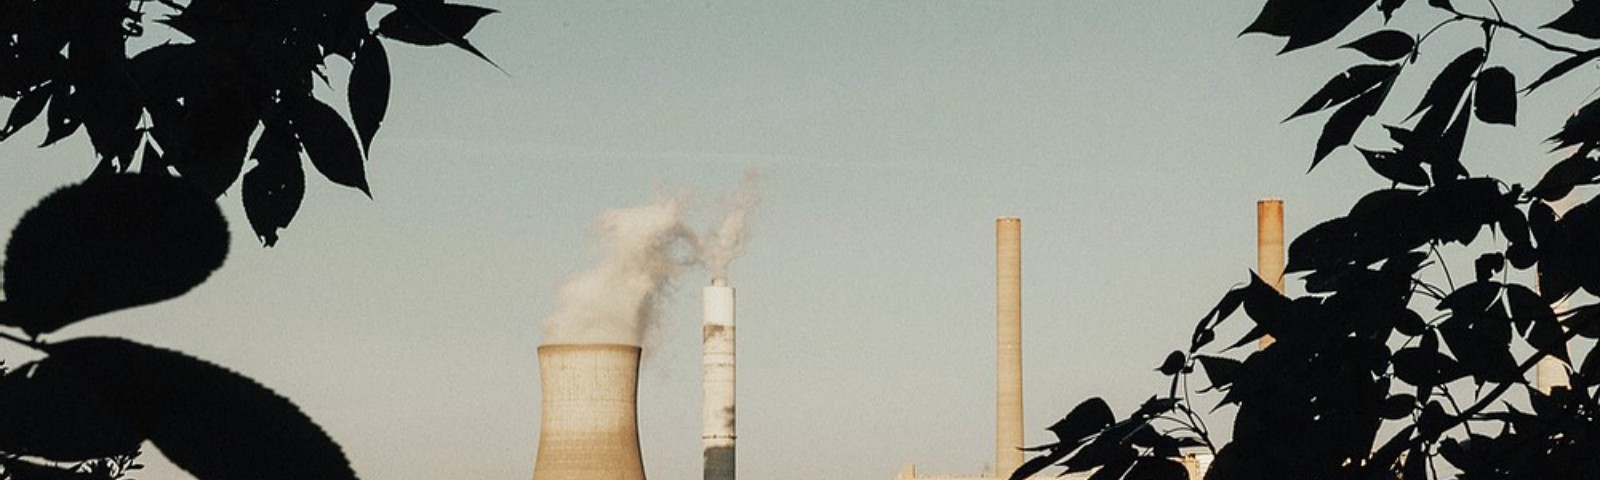 Photo of a power plant releasing fumes, CO2 into the at